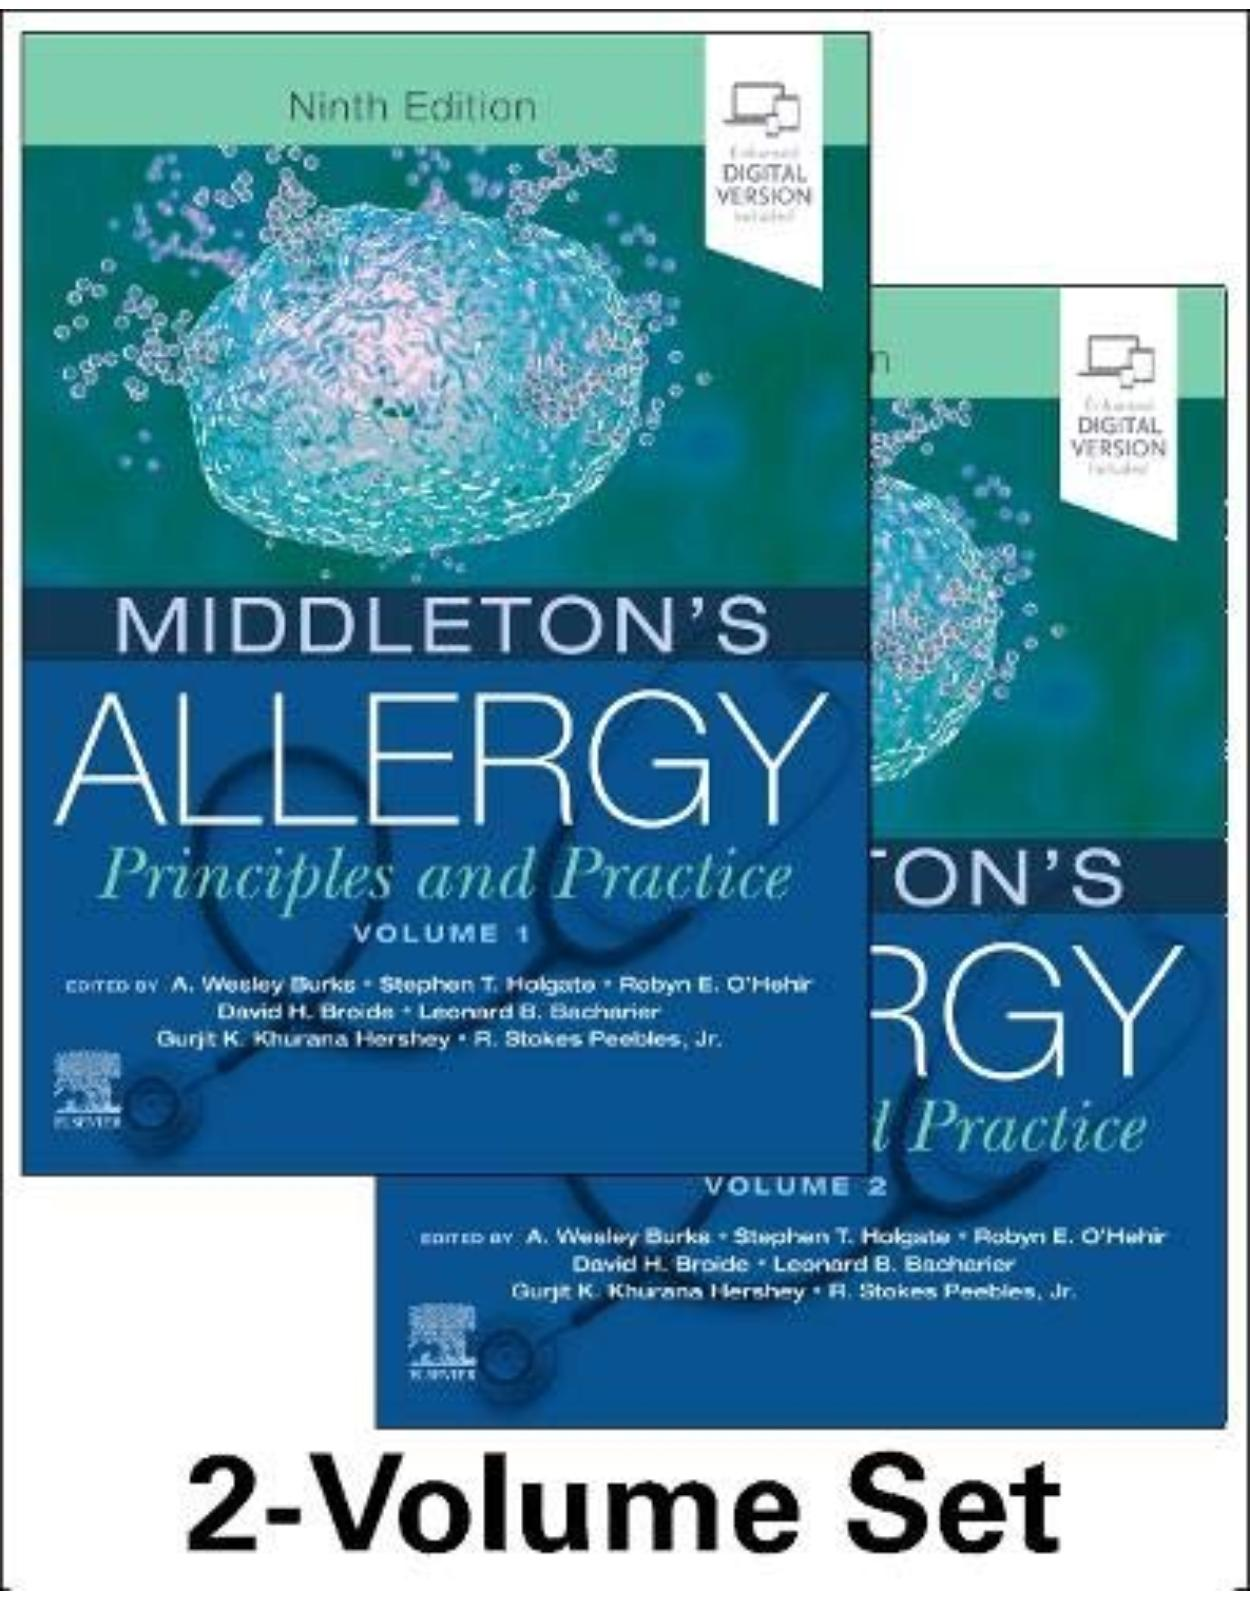 Middleton s Allergy 2-Volume Set, 9th Edition